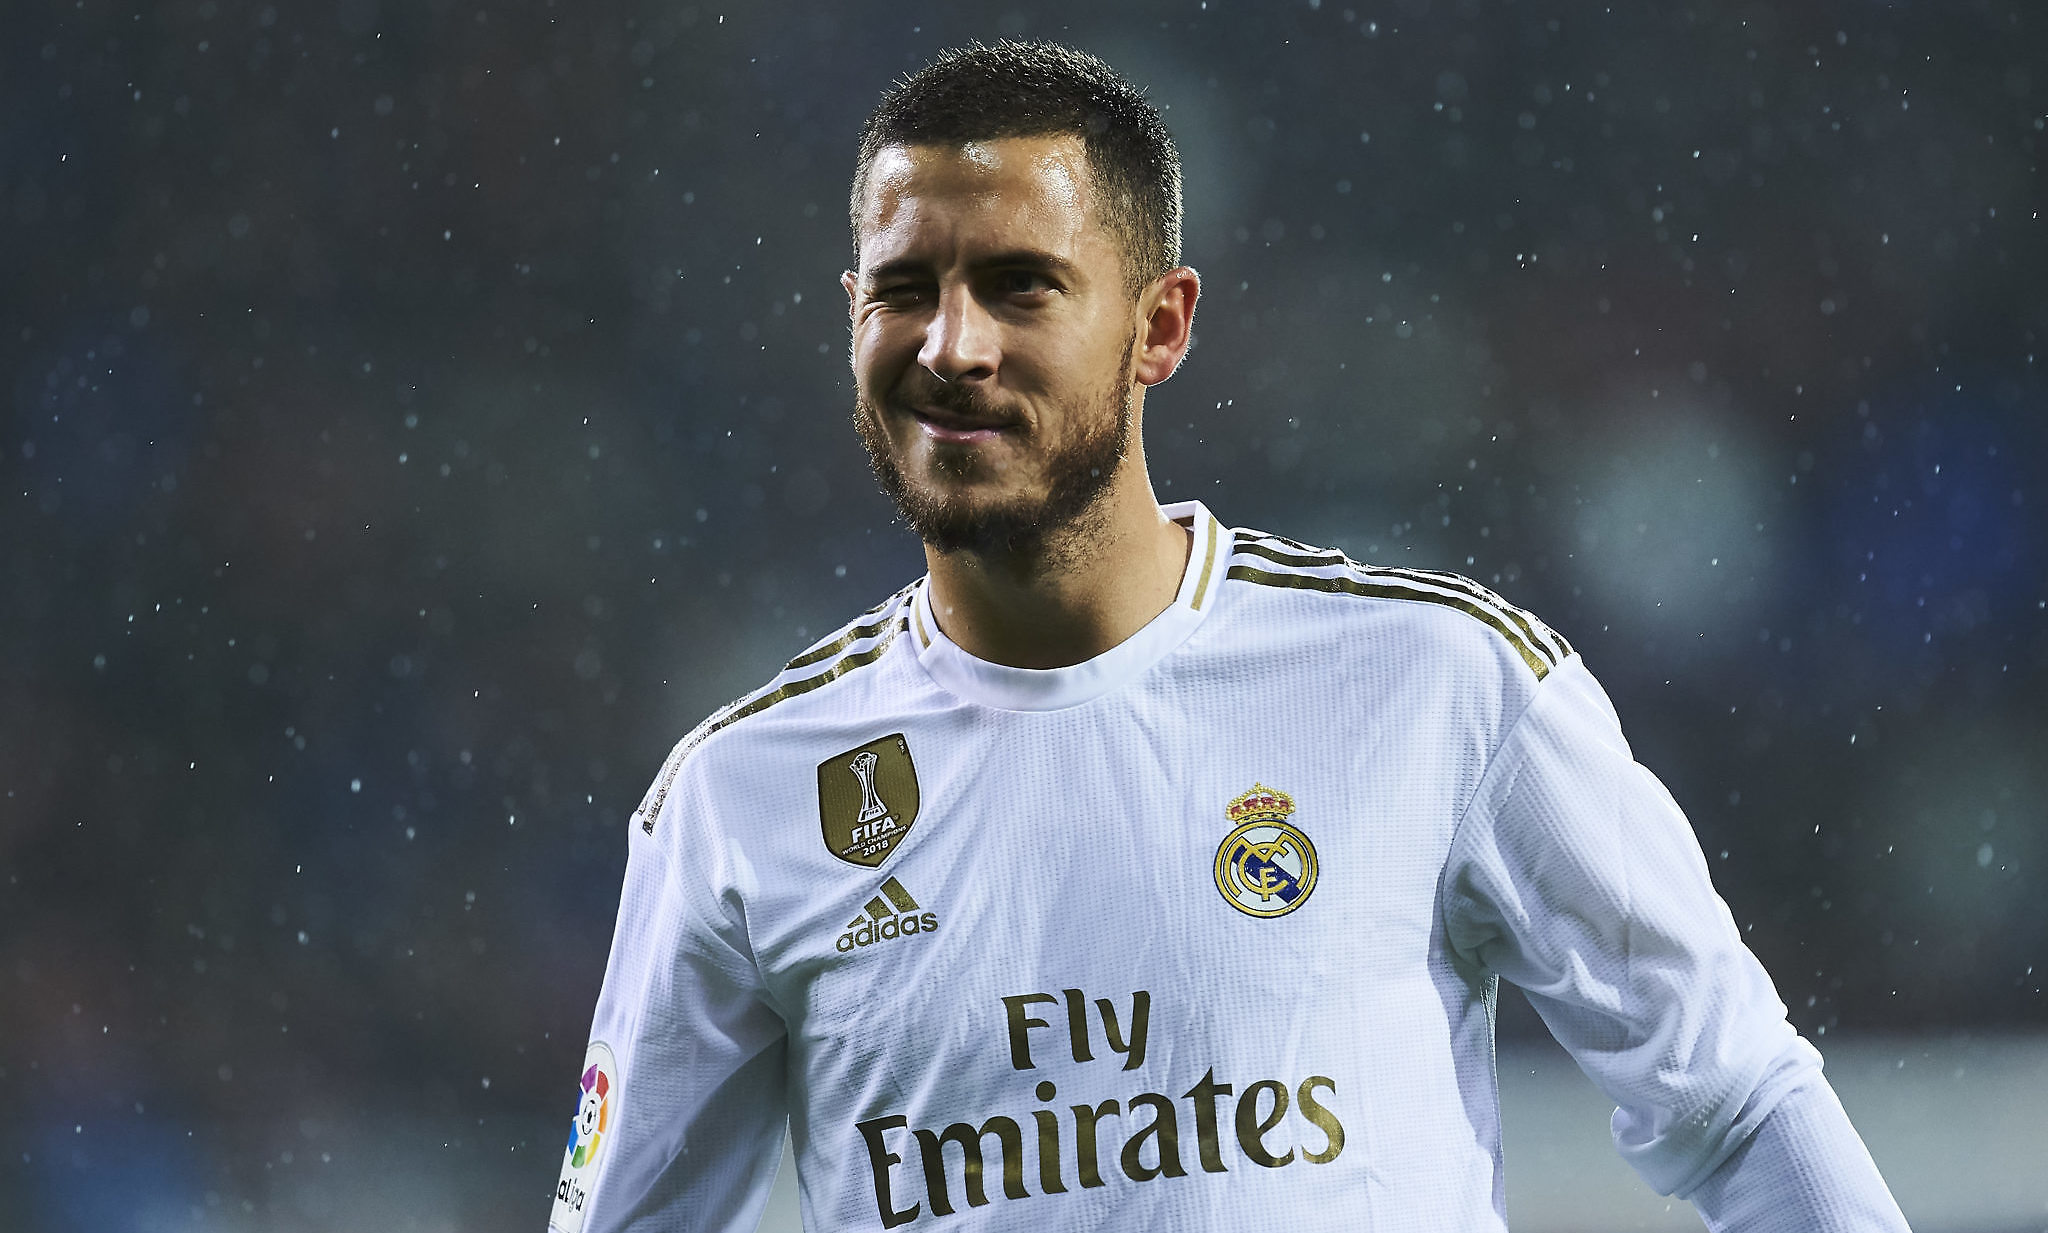 eden hazard real madrid eibar liga 2019-2020